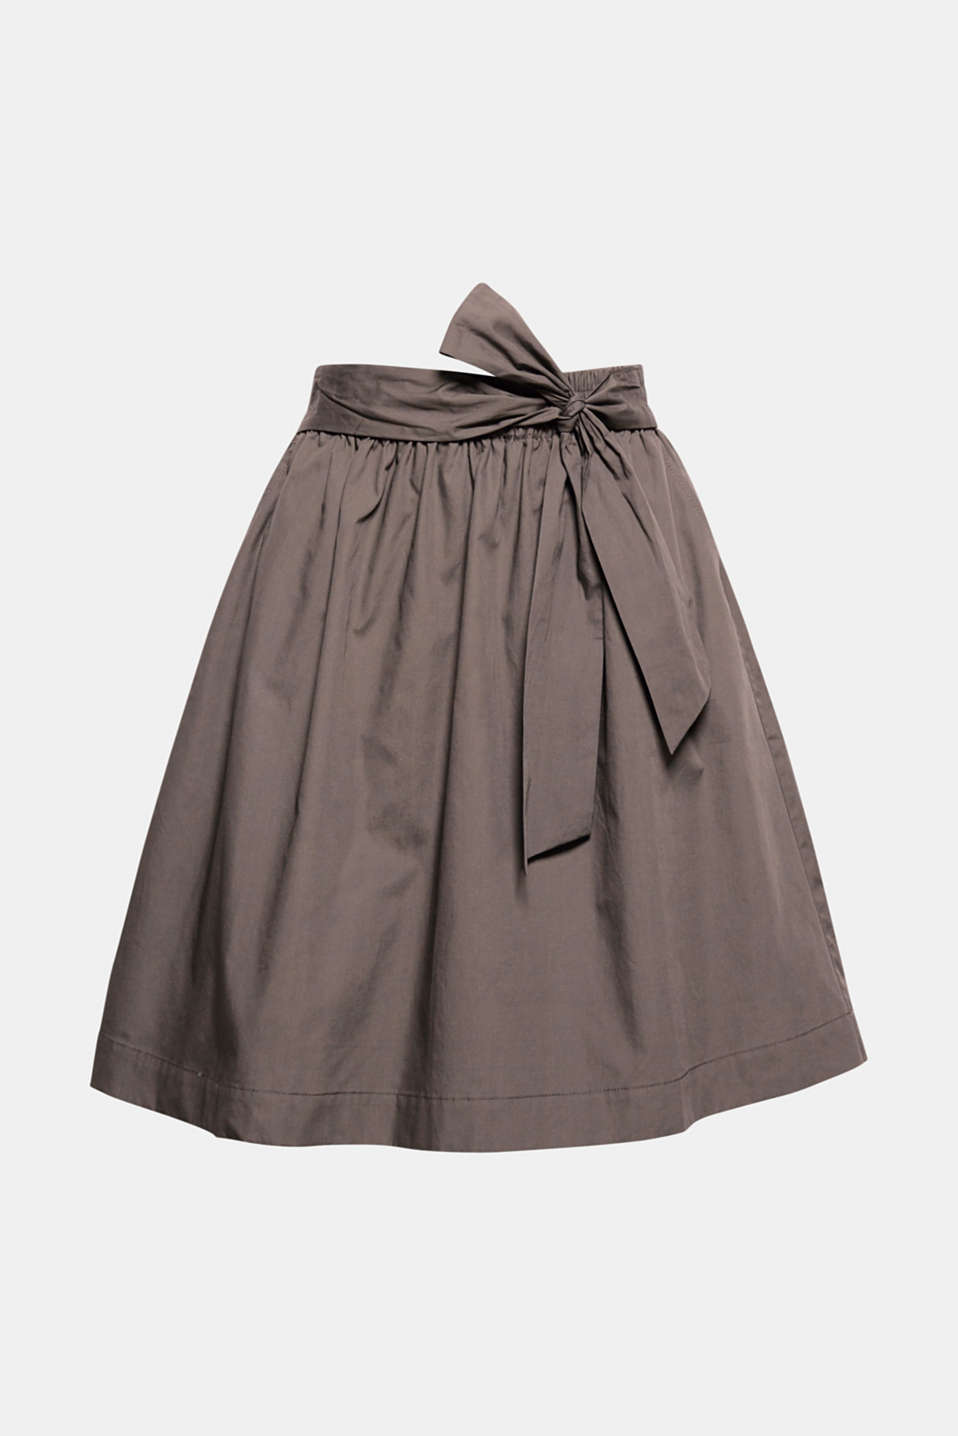 Style this skirt to look sporty or feminine! The pure cotton, the swirling cut and the belt detail make anything possible!